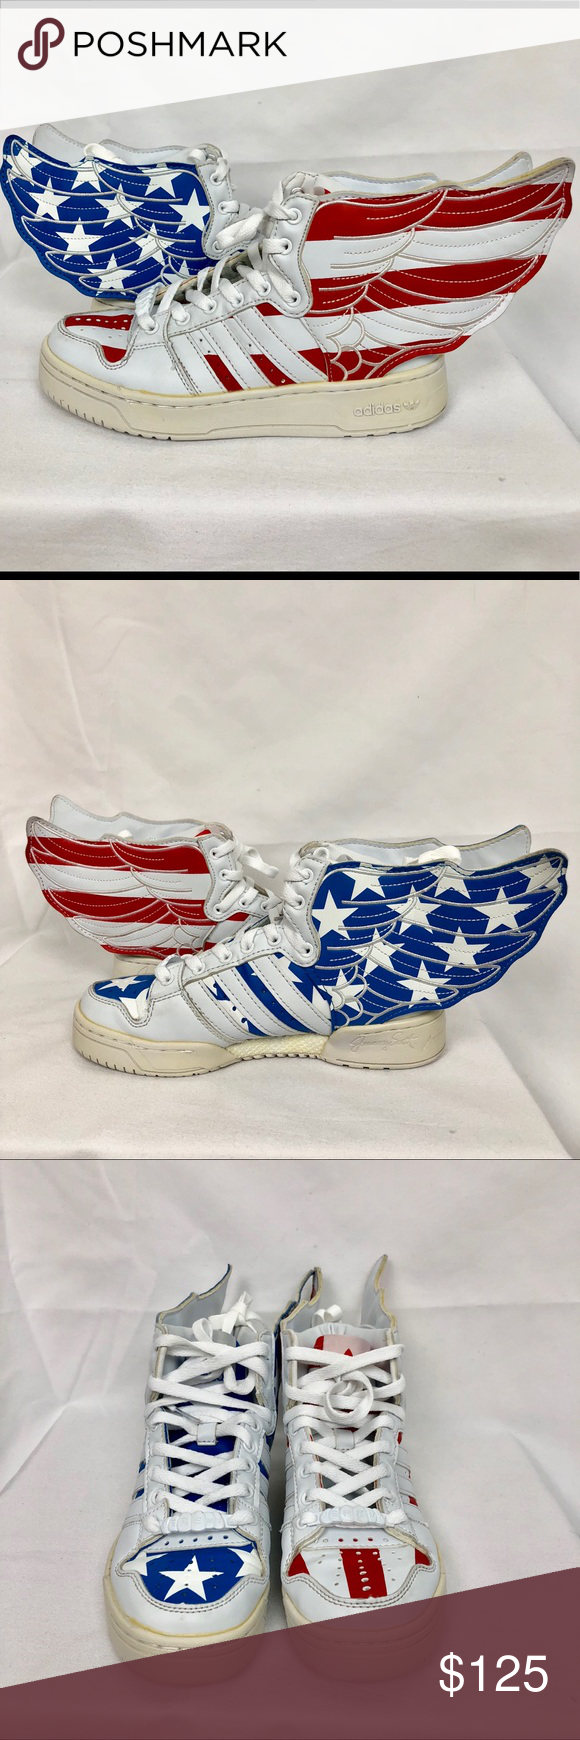 2f113dc732ae JEremy Scott Wings 2.0  Old Glory  Sneakers Pre-owned rare Adidas Jeremy  Scott old glory wings shoes in size 5 Shoes are in good condition the only  thing is ...